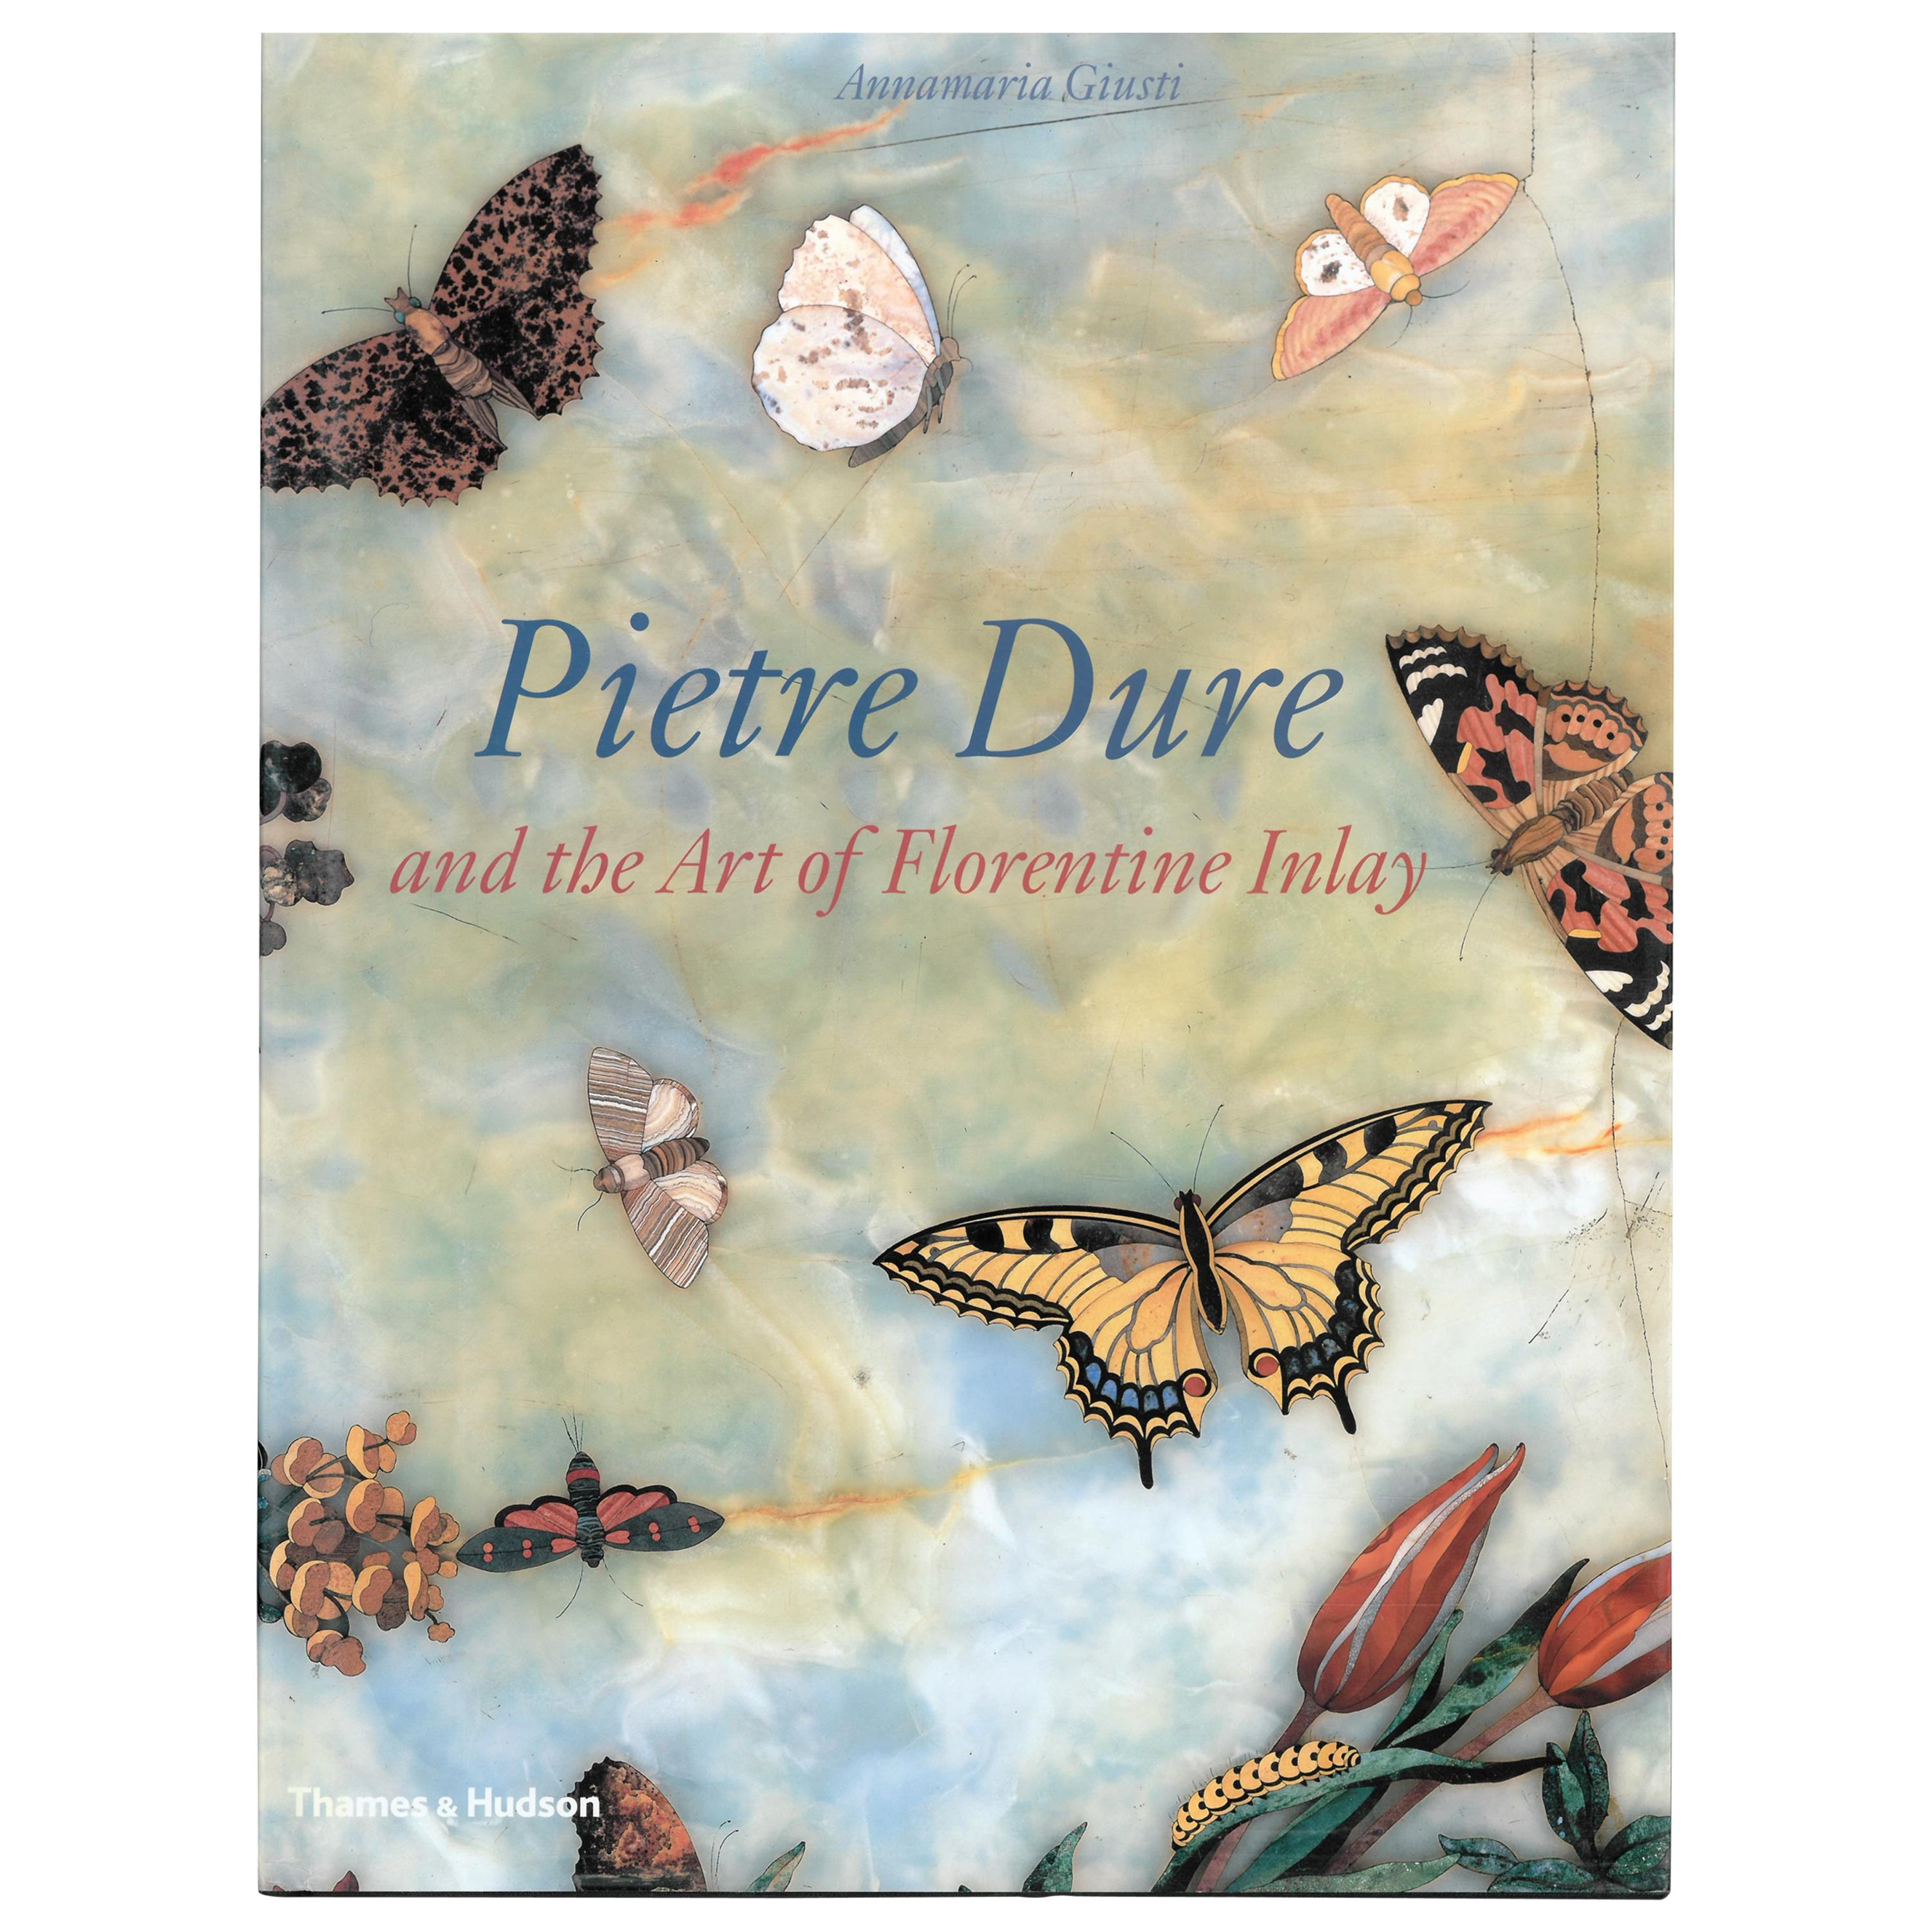 Pietre Dure, and the Art of Florentine Inlay 'Book'